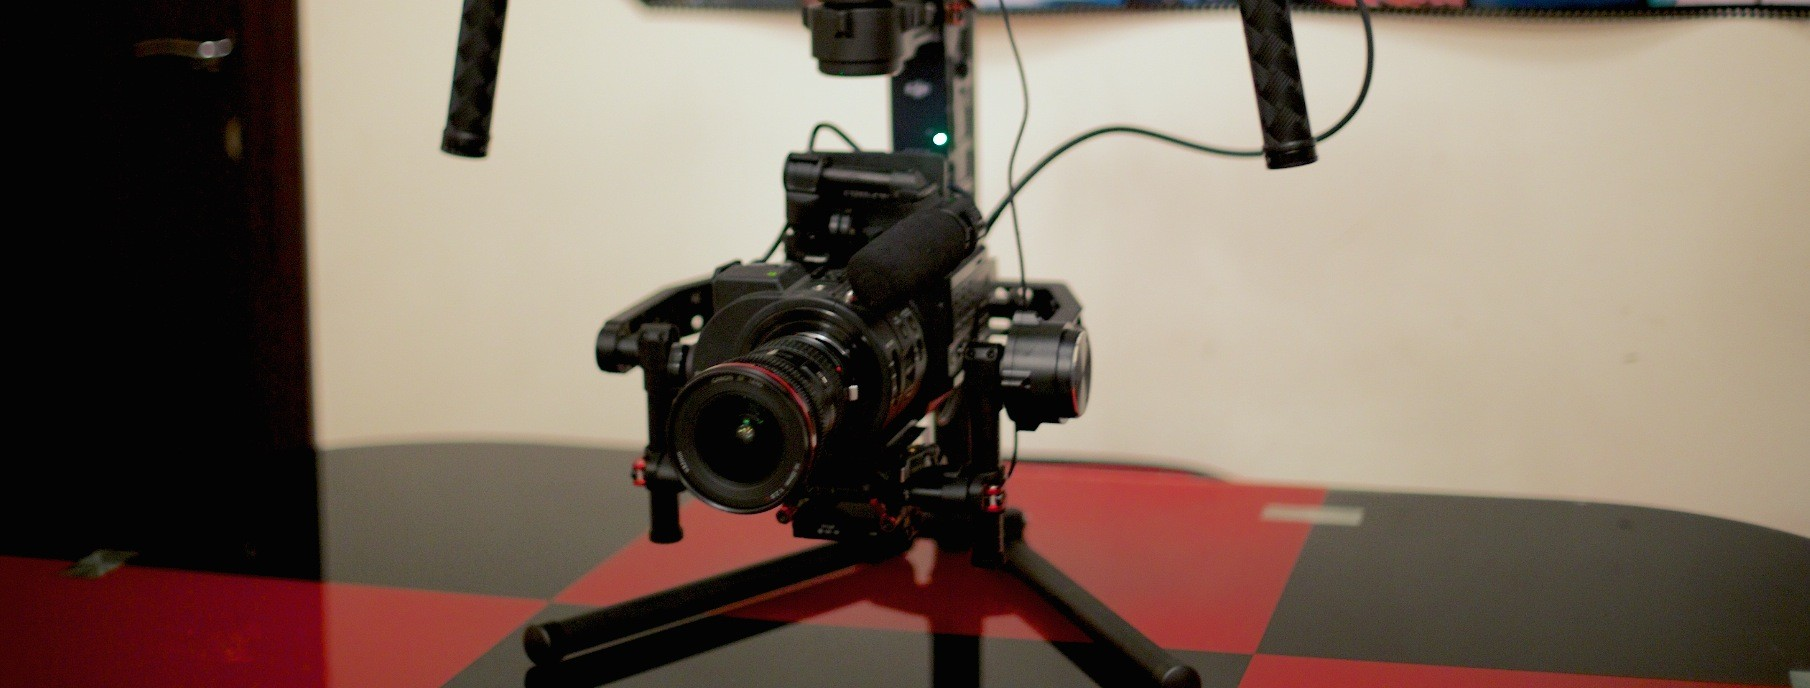 DJI Ronin + FS700 & 7Q July Firmware